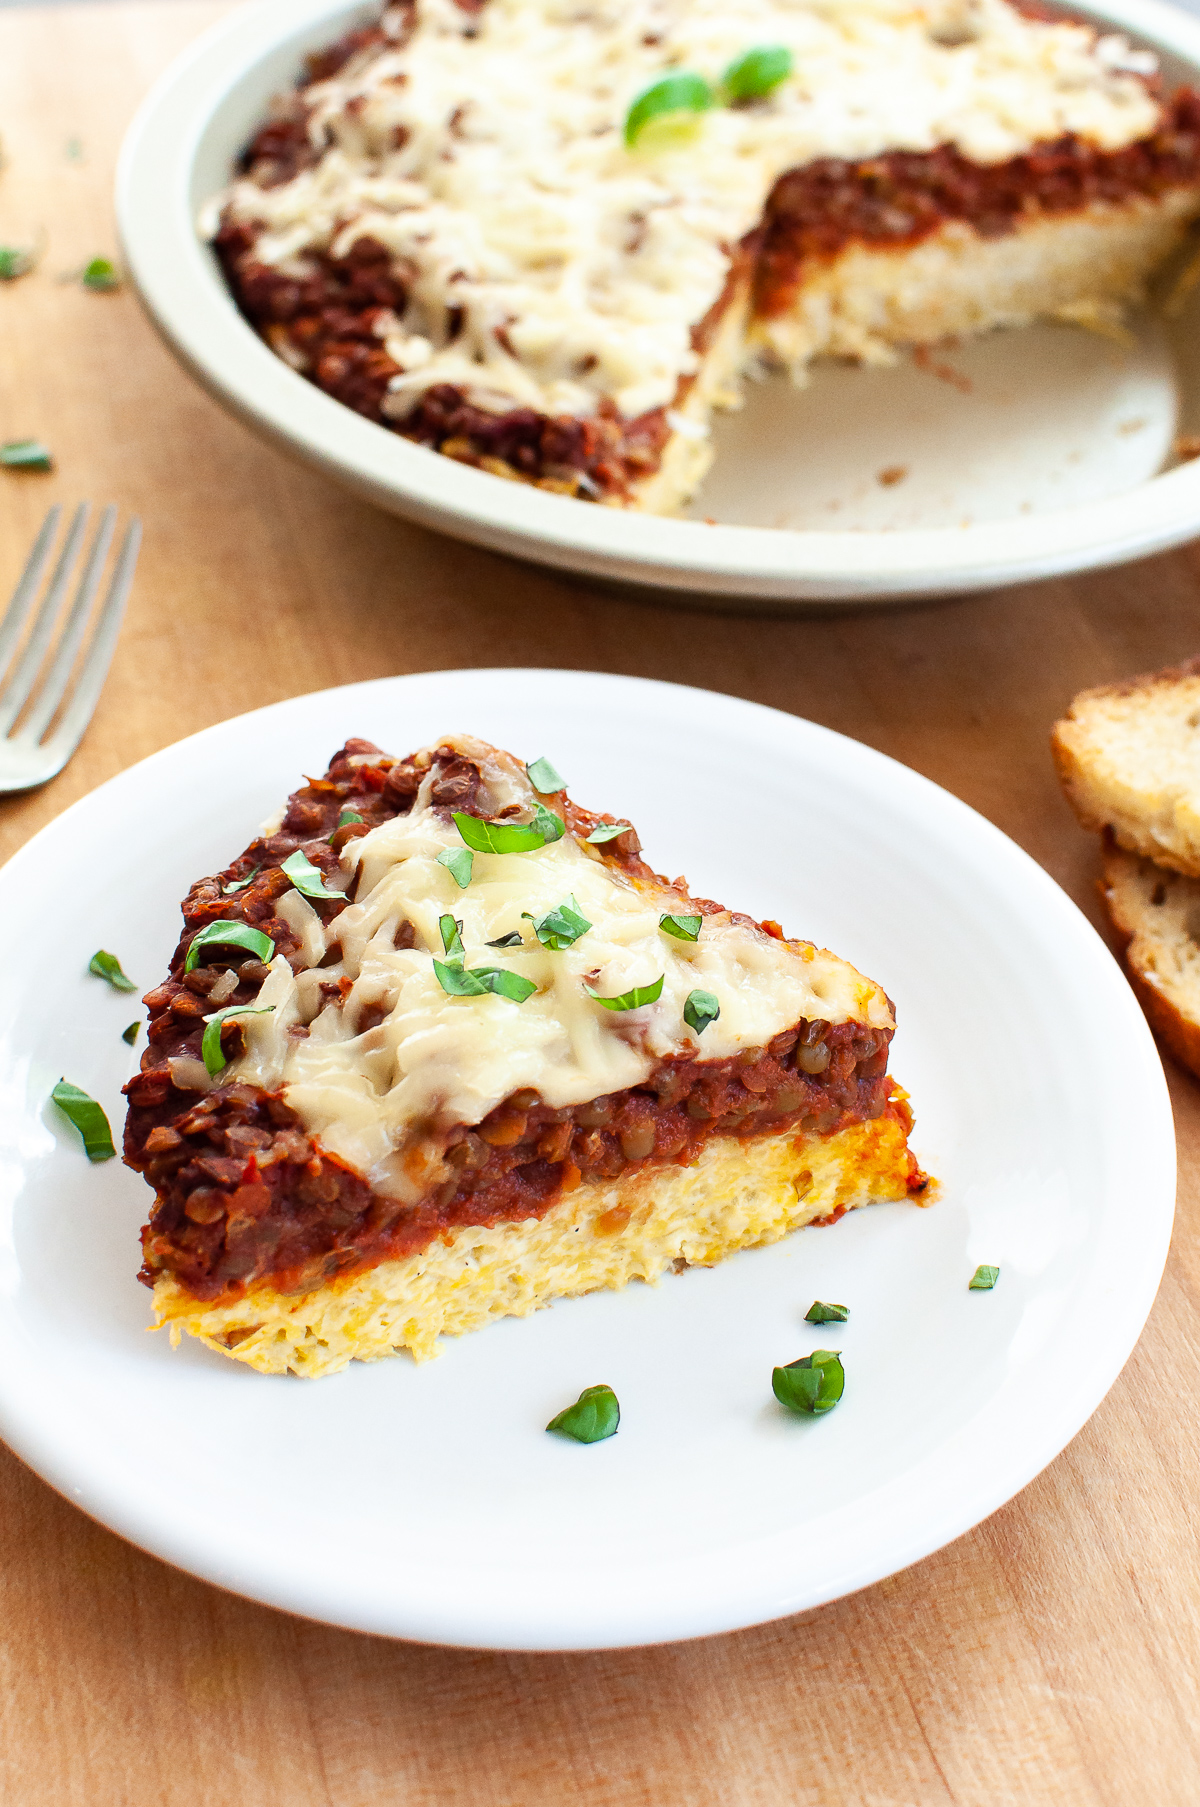 Spaghetti squash pie has gone vegan! It's streamlined to minimize ingredients, it's dairy and egg free, and it now makes TWO (freezer friendly) pies. Get the recipe at naturalcomfortkitchen.com